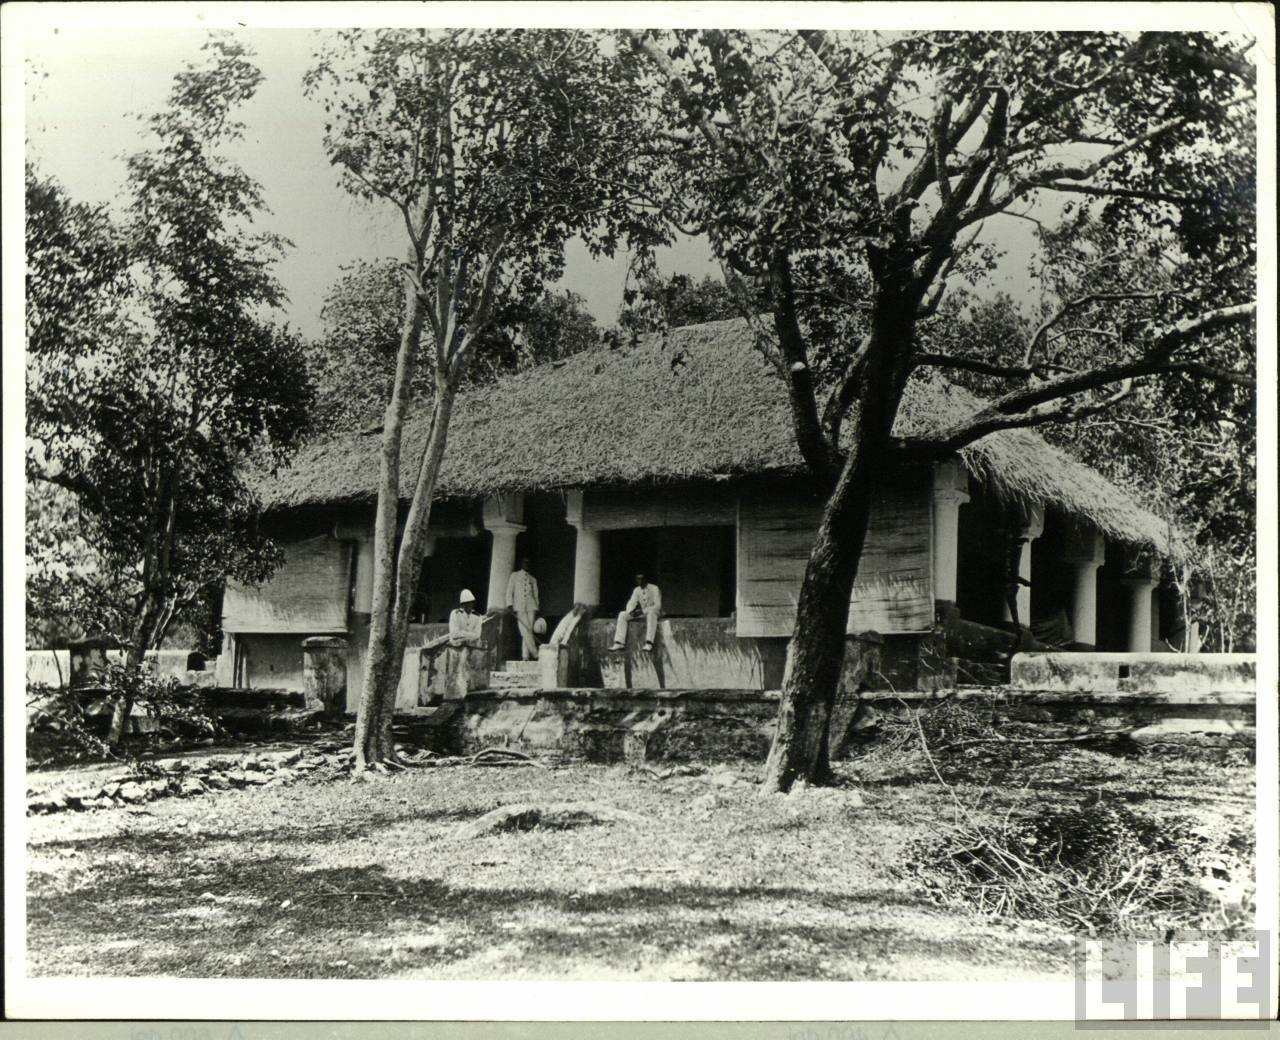 File:A British bungalow in India during the Raj (2) - LIFE.